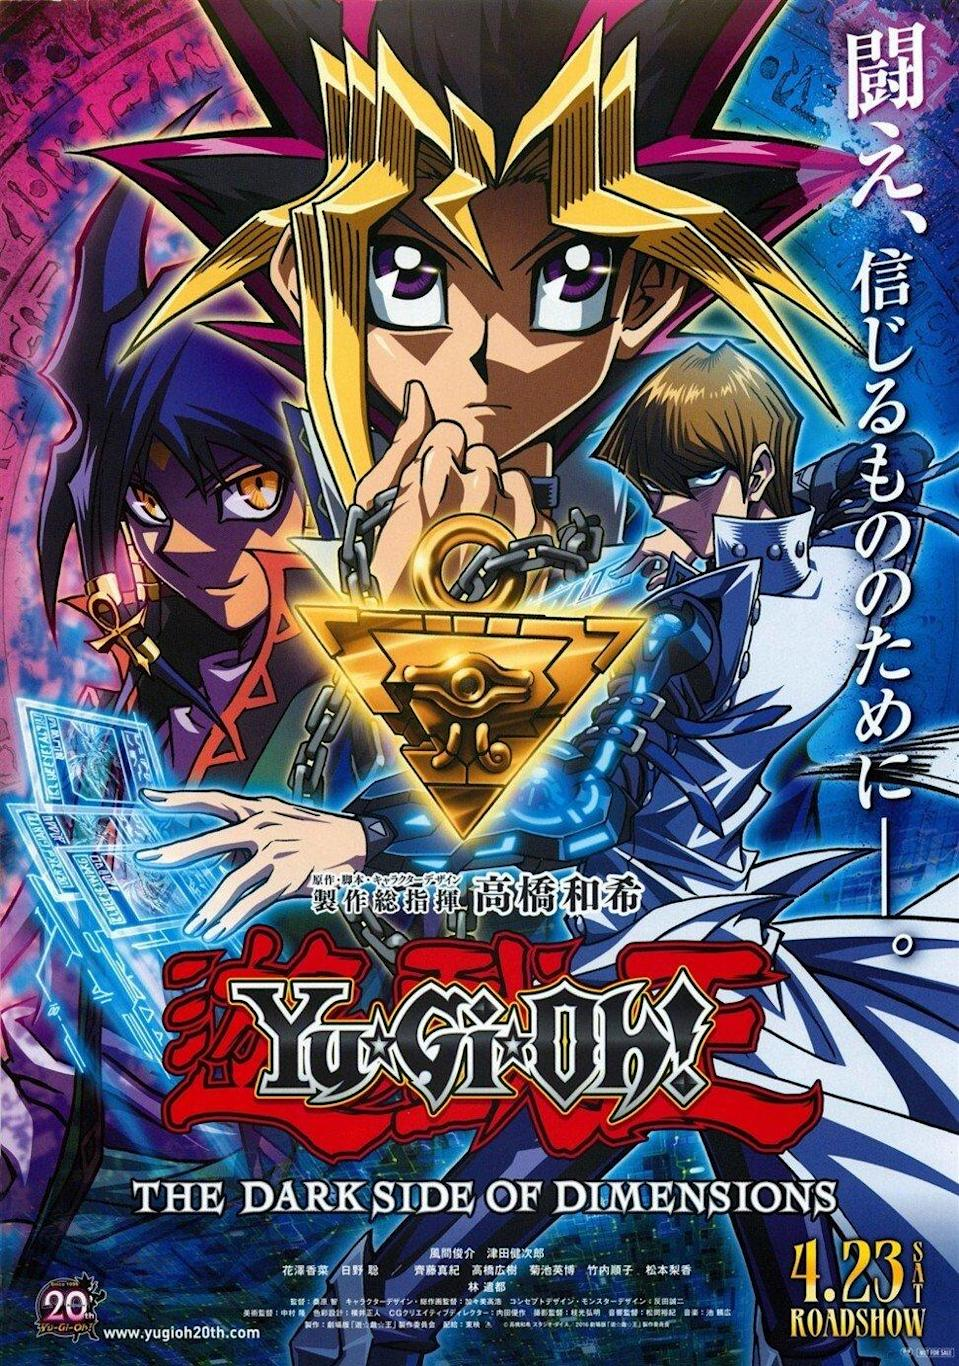 Yu-Gi-Oh!, along with Pokémon and Magic the Gathering, are highly sought after collectible gaming cards. Photo: Handout